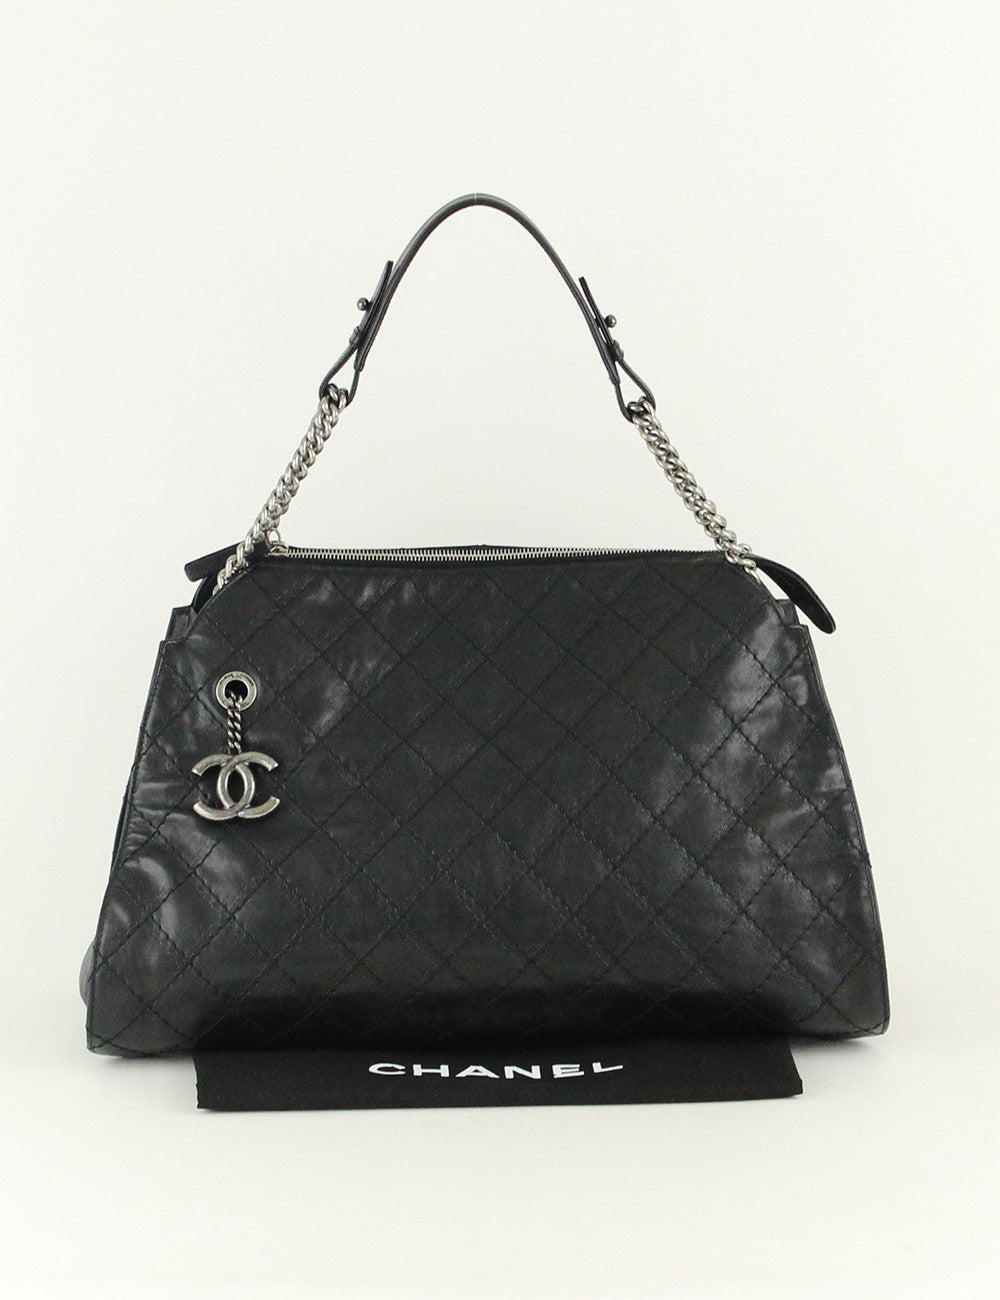 Chanel <br> Wild Stitch Chain Shoulder Bag